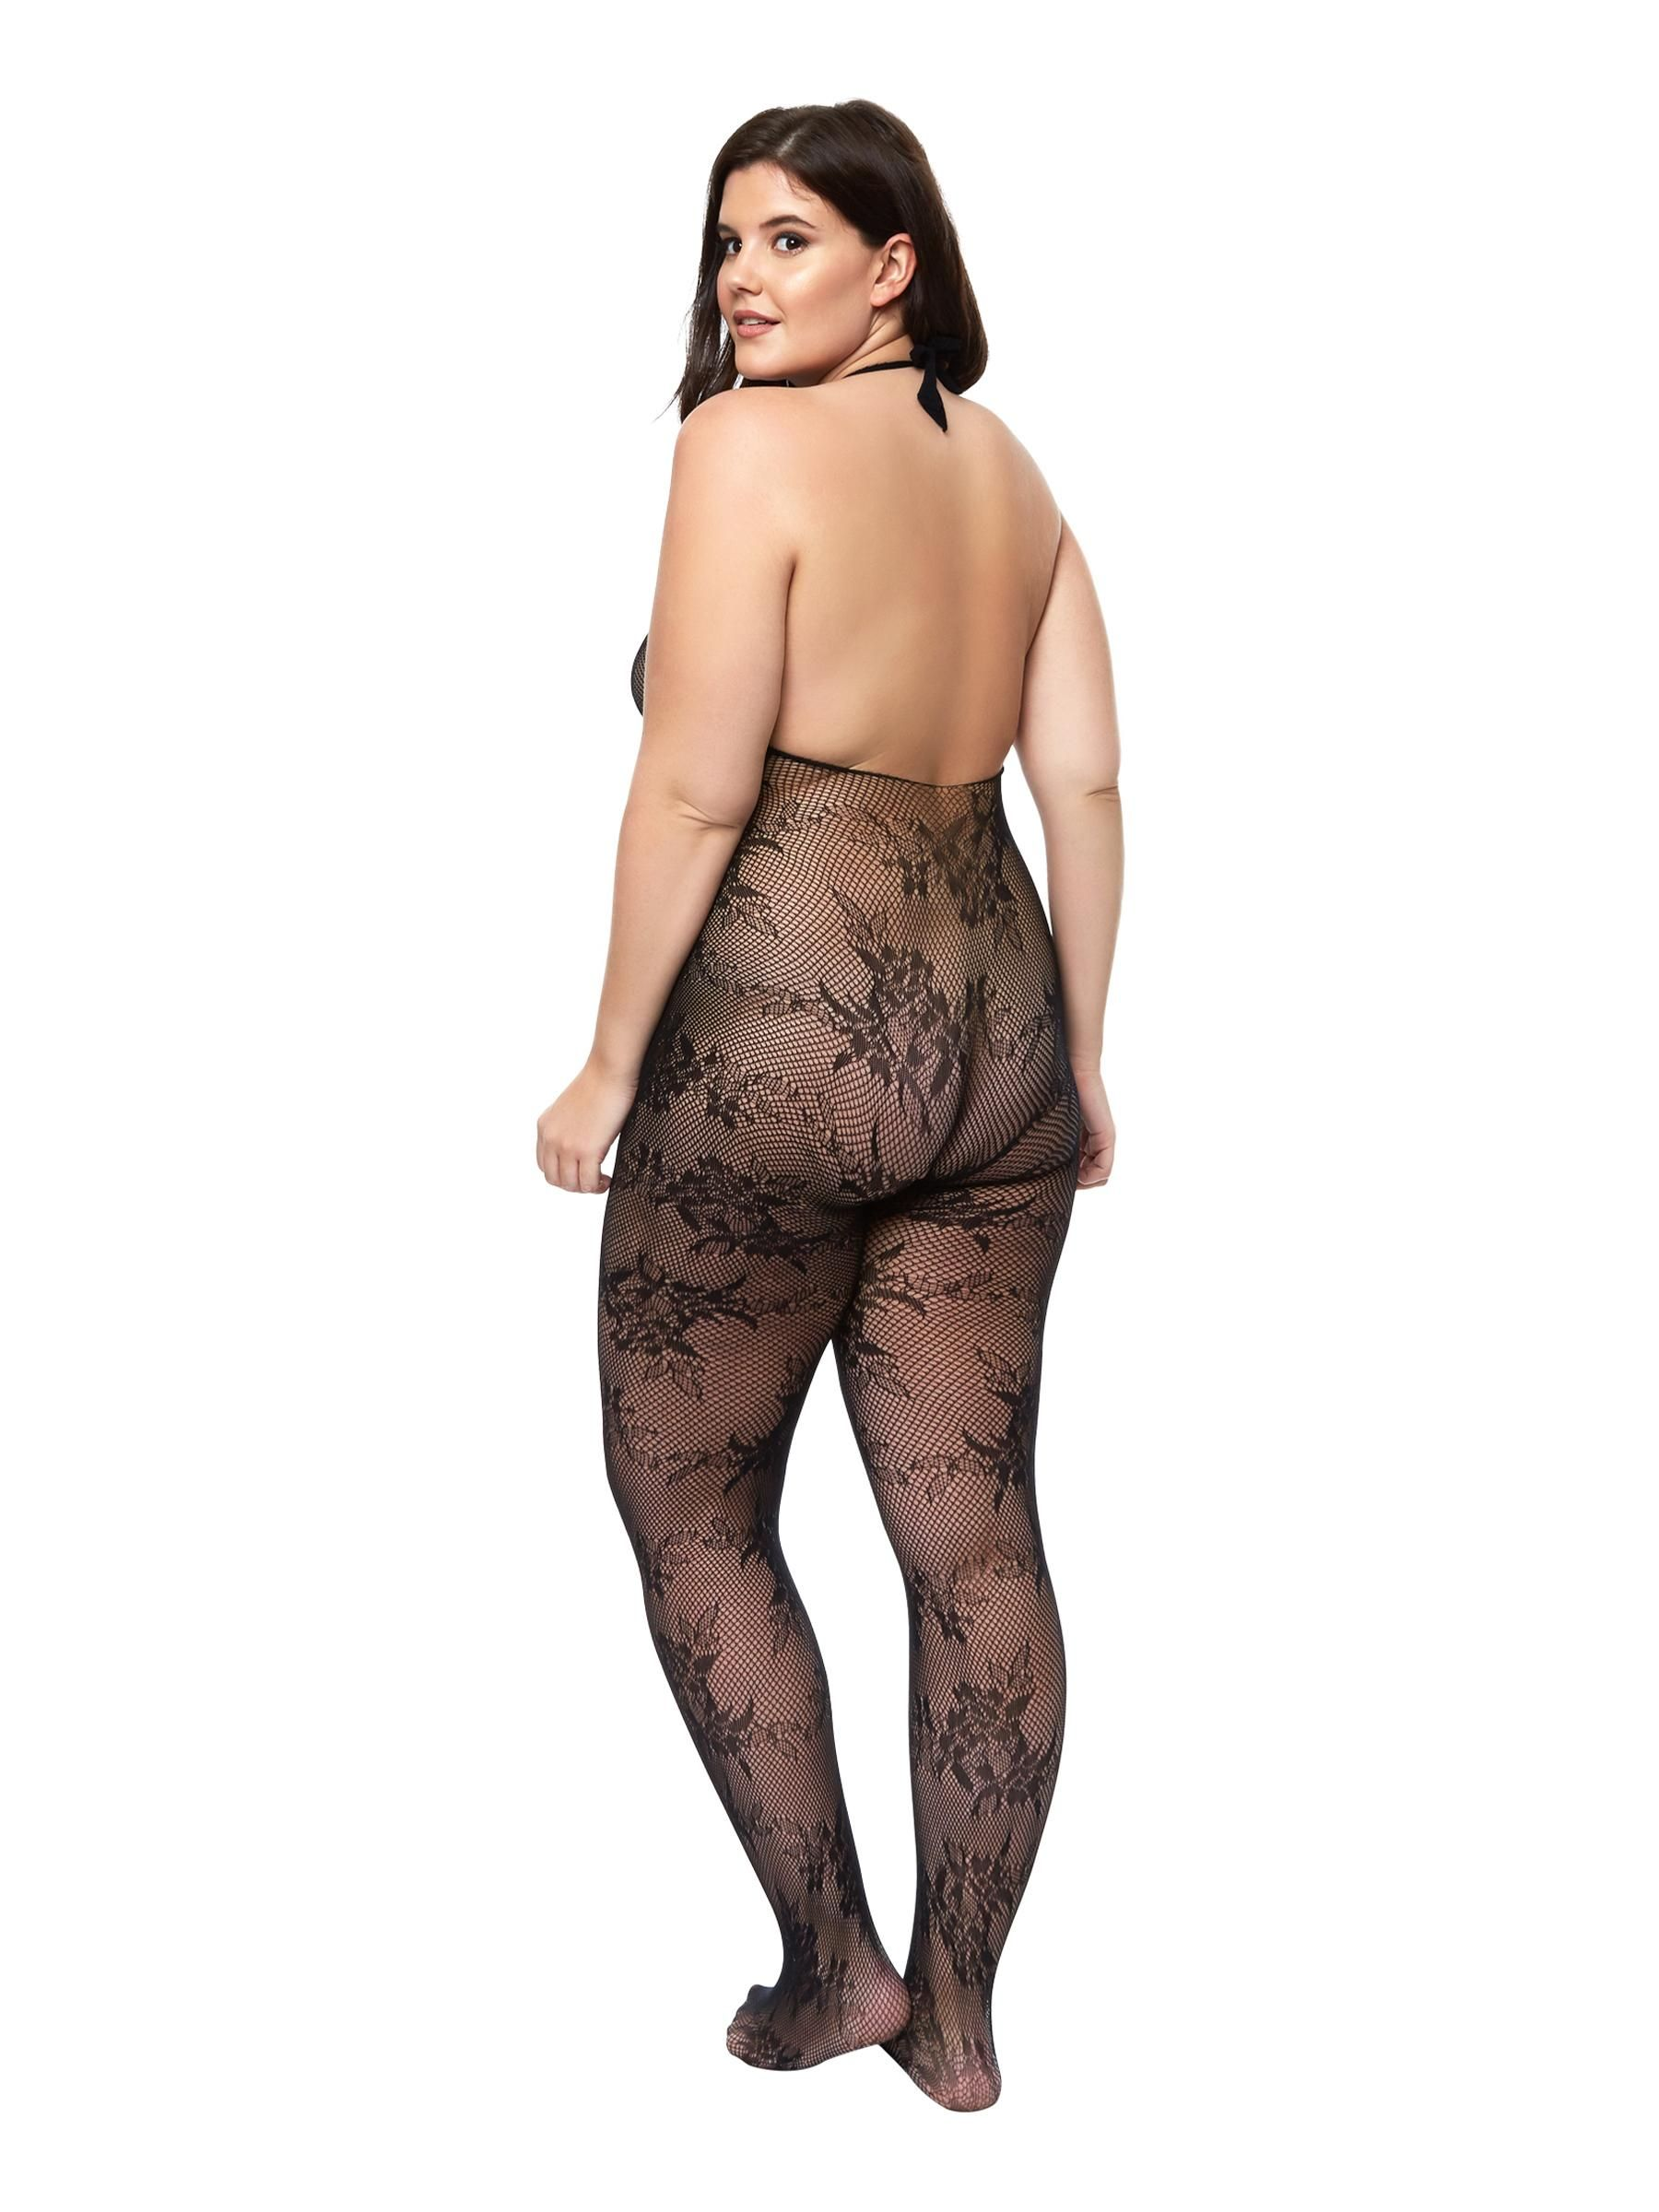 5de6b8473f42e Helen Crotchless Bodystocking Ann Summers